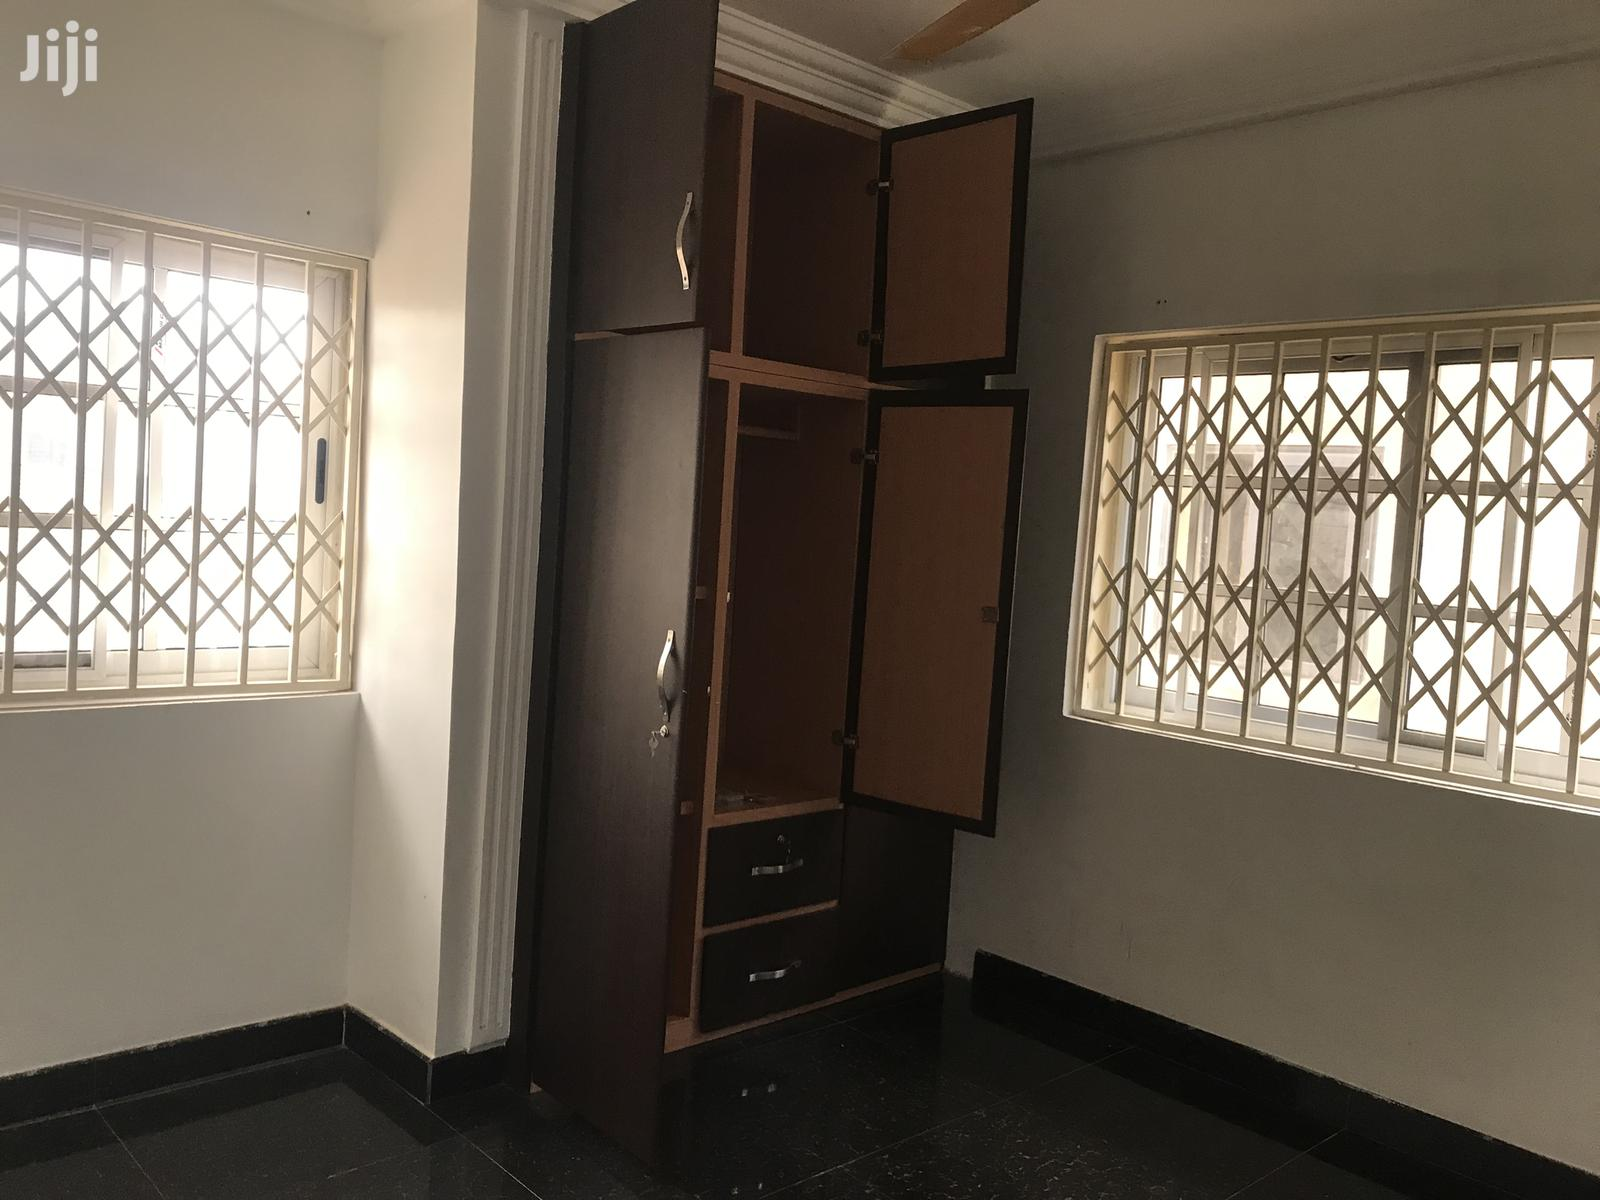 Executive 2 Bedroom Self Contain Apart to Let at Ajiriganor | Houses & Apartments For Rent for sale in East Legon, Greater Accra, Ghana